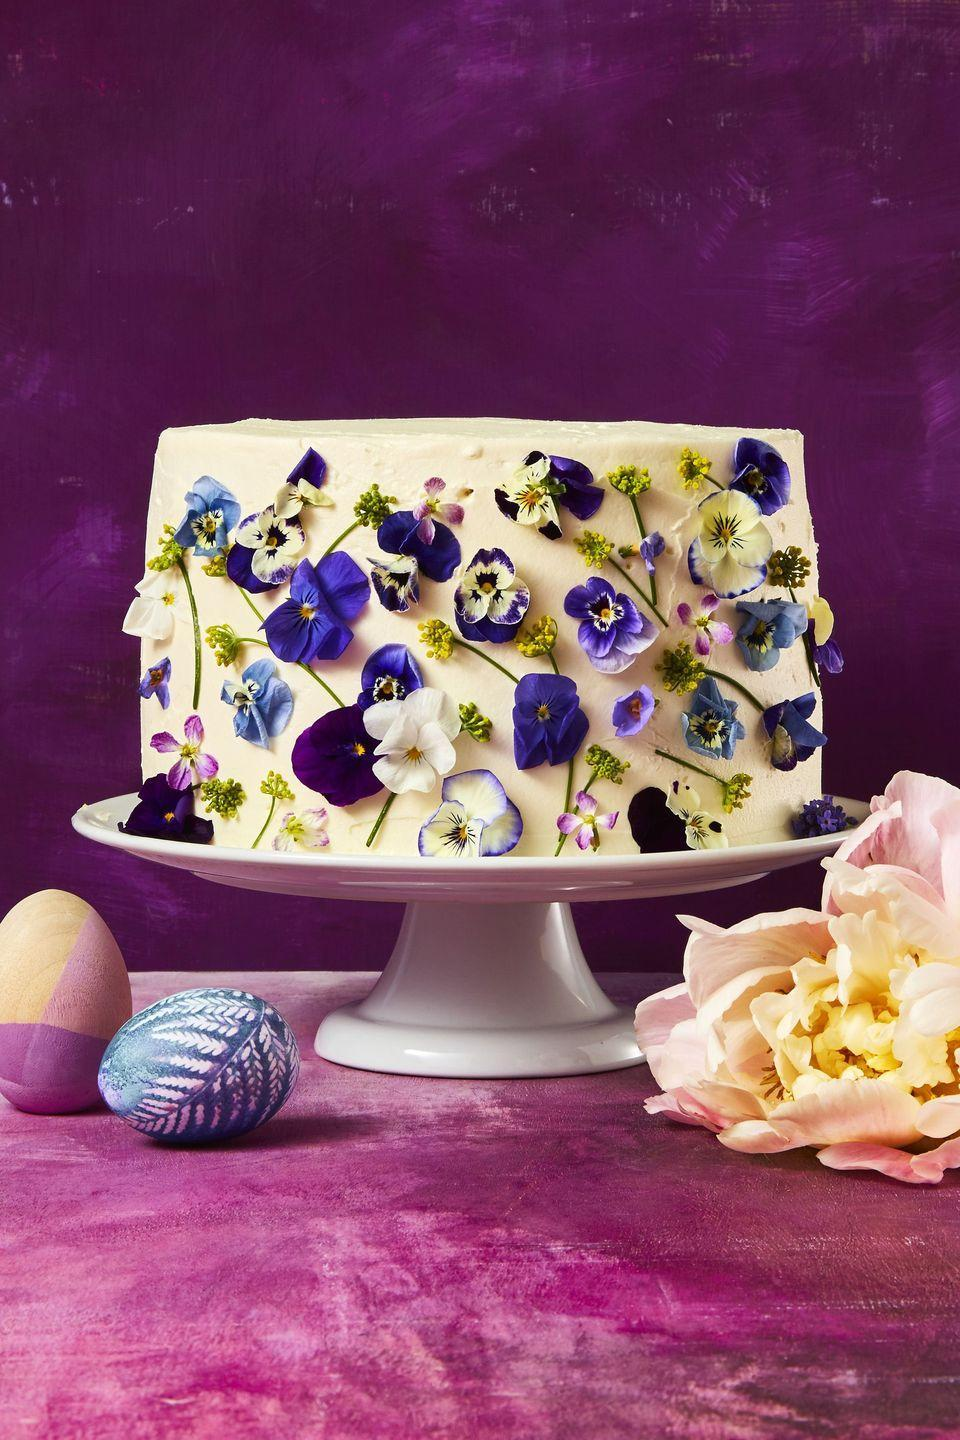 "<p>Take inspiration from your garden by making this flower-covered layed cake. </p><p><a class=""link rapid-noclick-resp"" href=""https://www.amazon.com/GEORLD-Pansies-Cupcake-Toppers-Decoration/dp/B07BNBC7JD/?tag=syn-yahoo-20&ascsubtag=%5Bartid%7C10055.g.4156%5Bsrc%7Cyahoo-us"" rel=""nofollow noopener"" target=""_blank"" data-ylk=""slk:SHOP EDIBLE FLOWERS"">SHOP EDIBLE FLOWERS</a></p><p><em><a href=""https://www.goodhousekeeping.com/food-recipes/dessert/a48178/vanilla-blossom-cake-recipe/"" rel=""nofollow noopener"" target=""_blank"" data-ylk=""slk:Get the recipe for Vanilla Blossom Cake »"" class=""link rapid-noclick-resp"">Get the recipe for Vanilla Blossom Cake »</a></em> </p>"